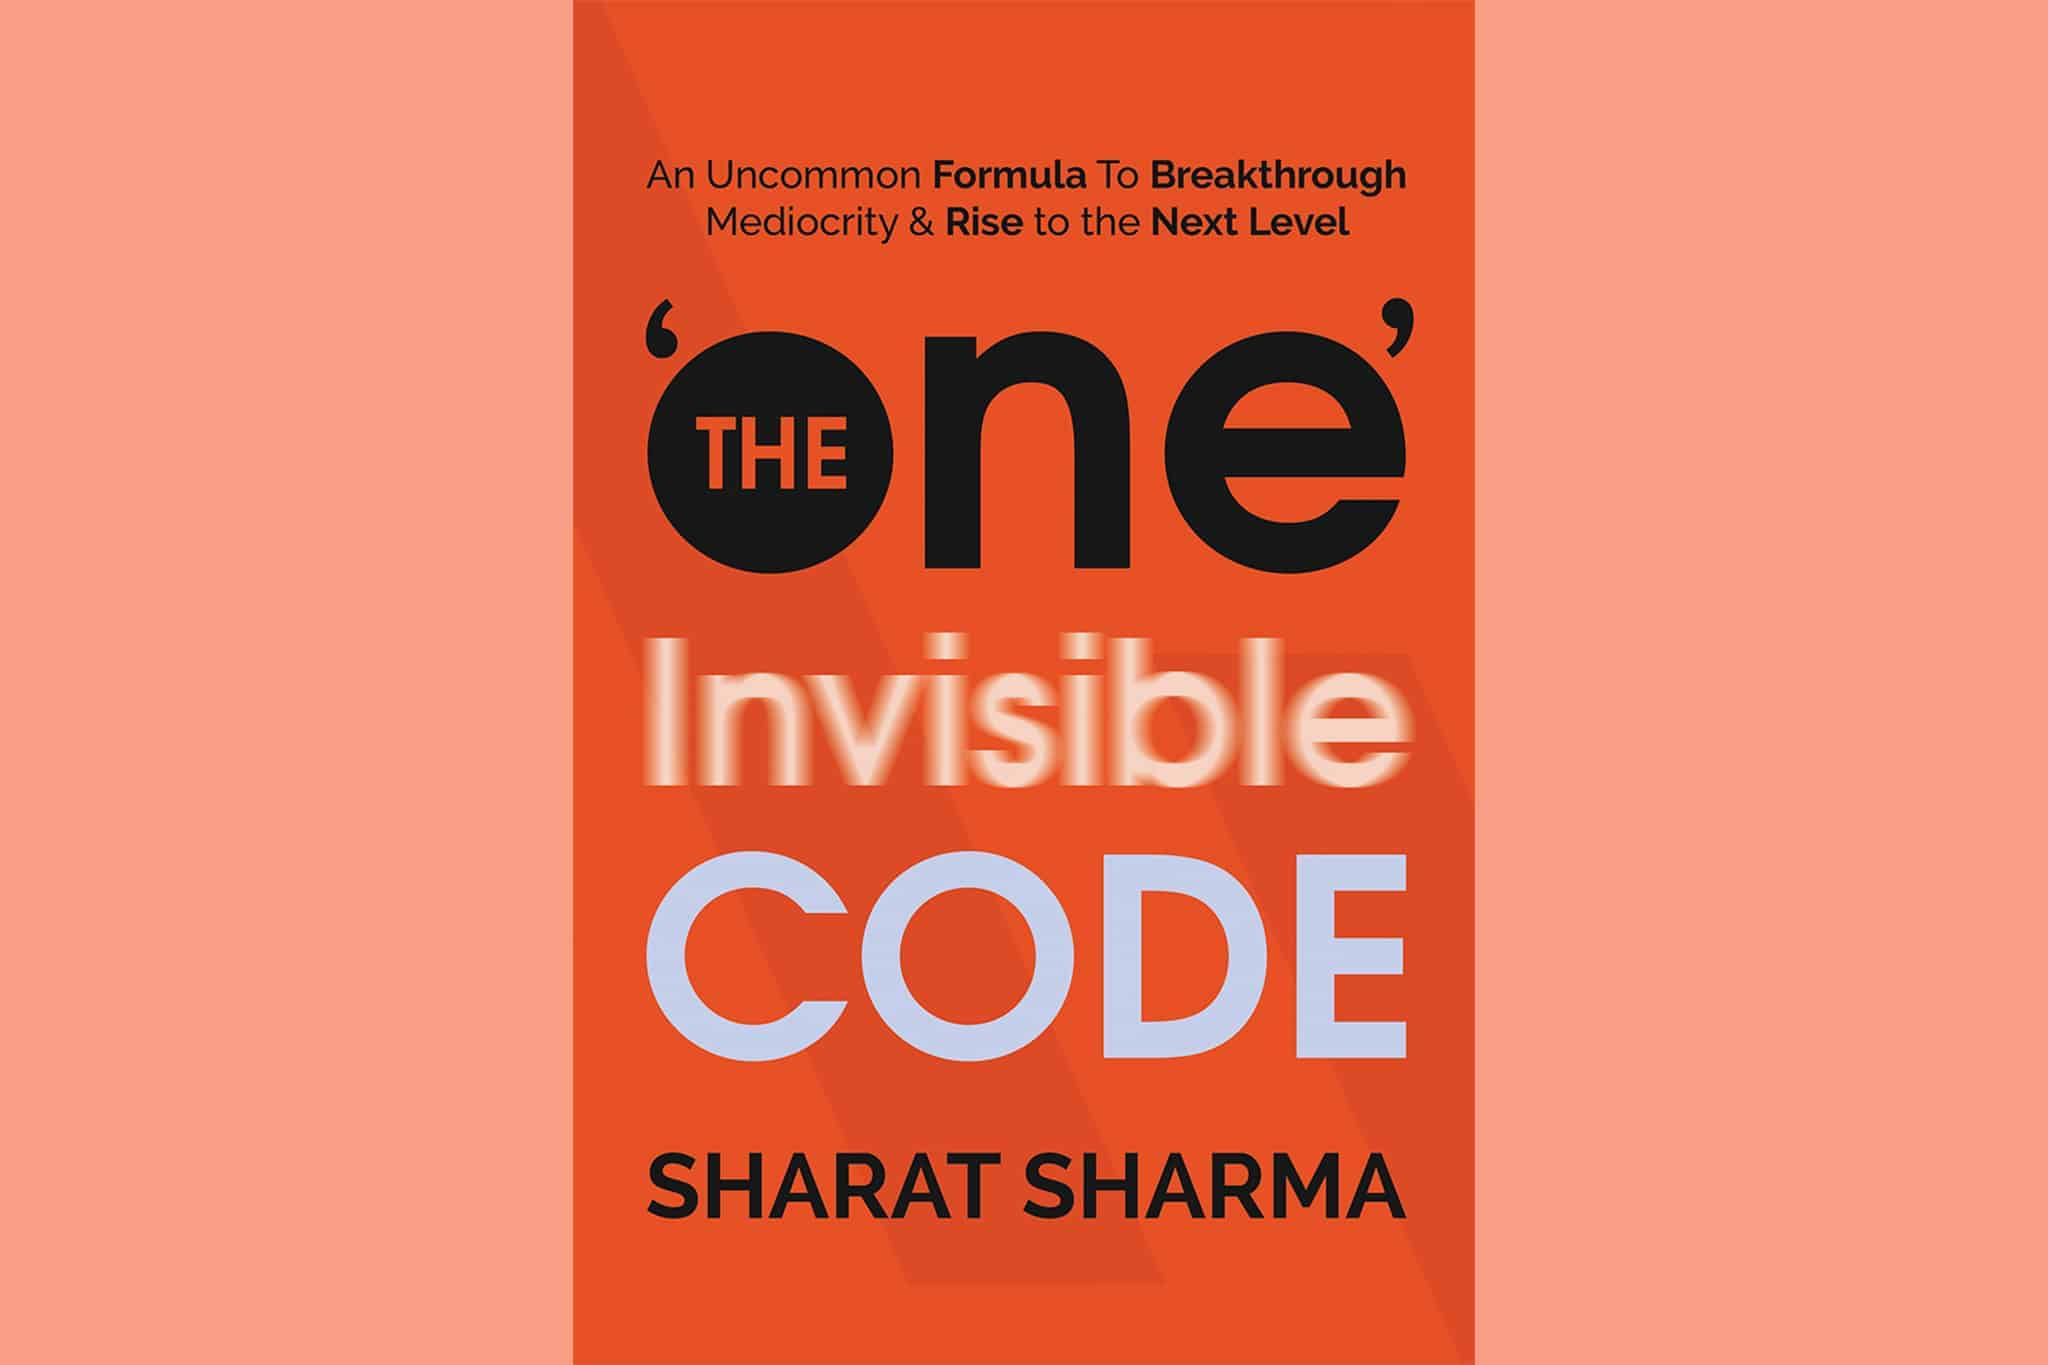 The 'One' Invisible Code An Uncommon Formula To Breakthrough Mediocrity & Rise To The Next Level By Sharat Sharma